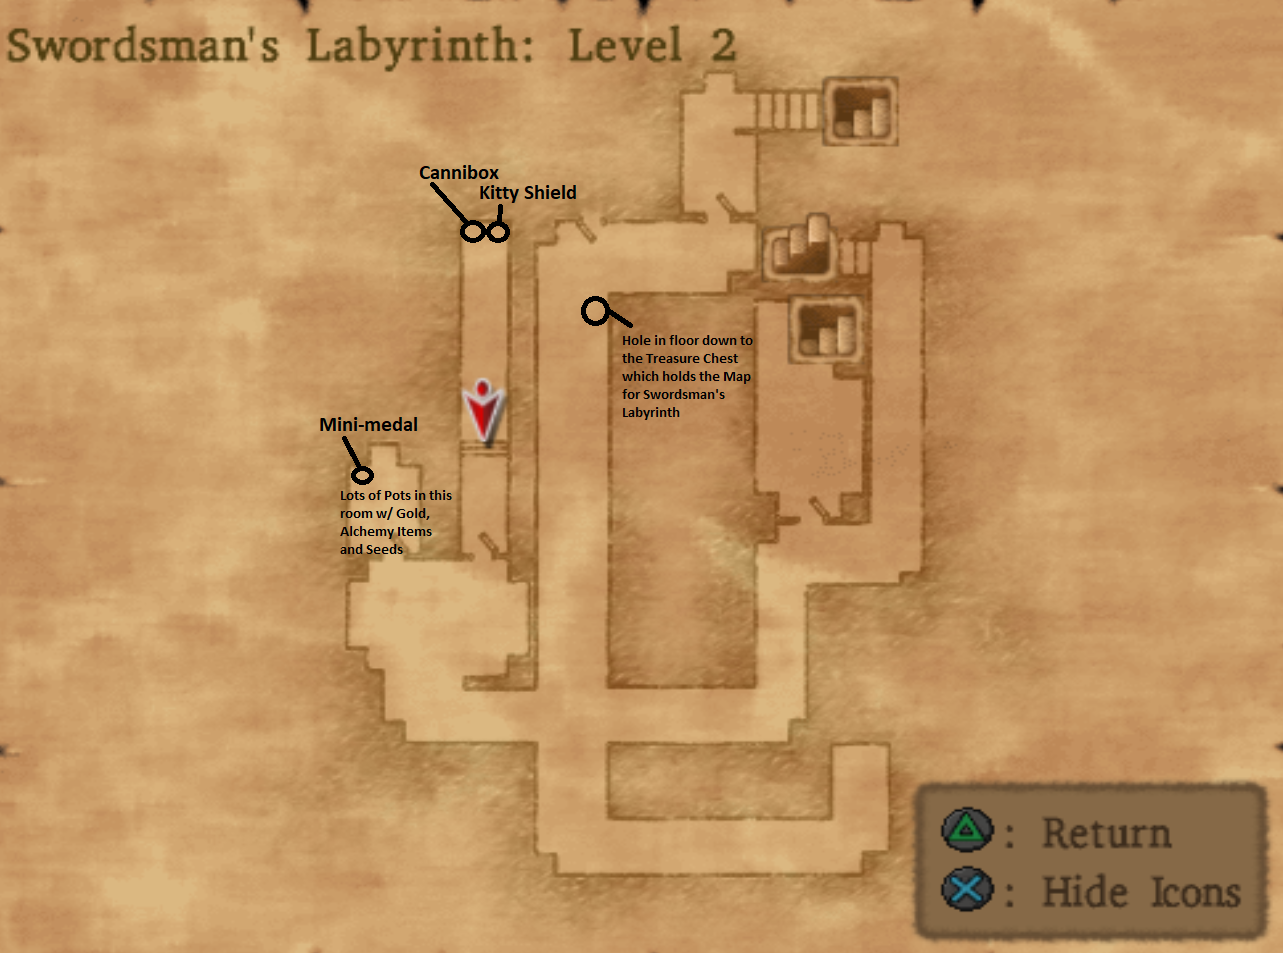 Map of Swordsmans Labyrinth Level 2